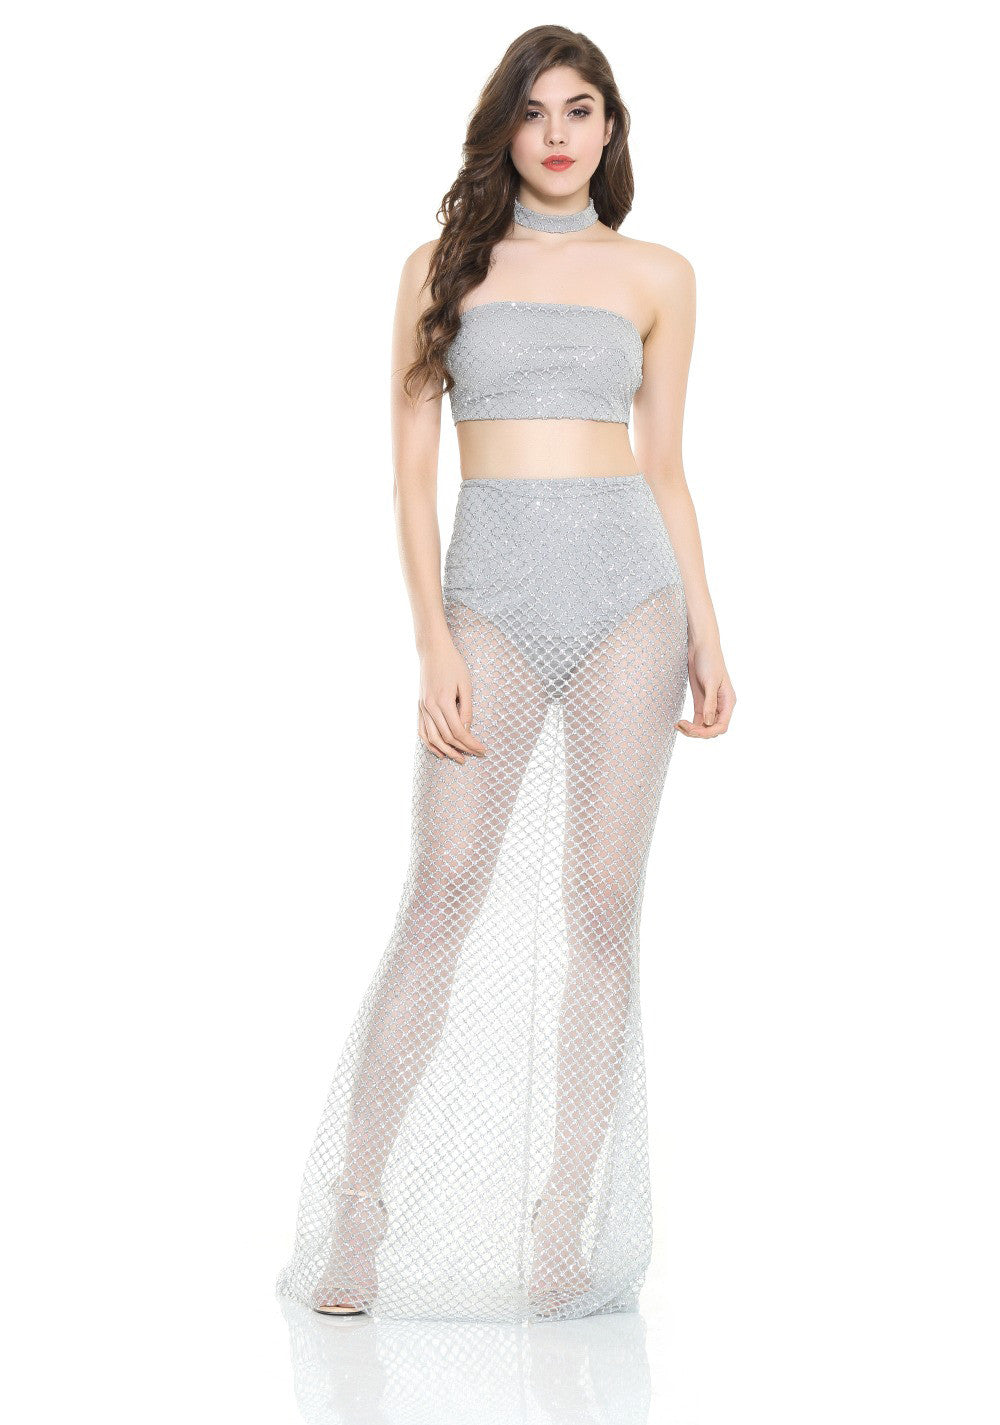 'Ariel' Silver Sequin 2 Piece Set